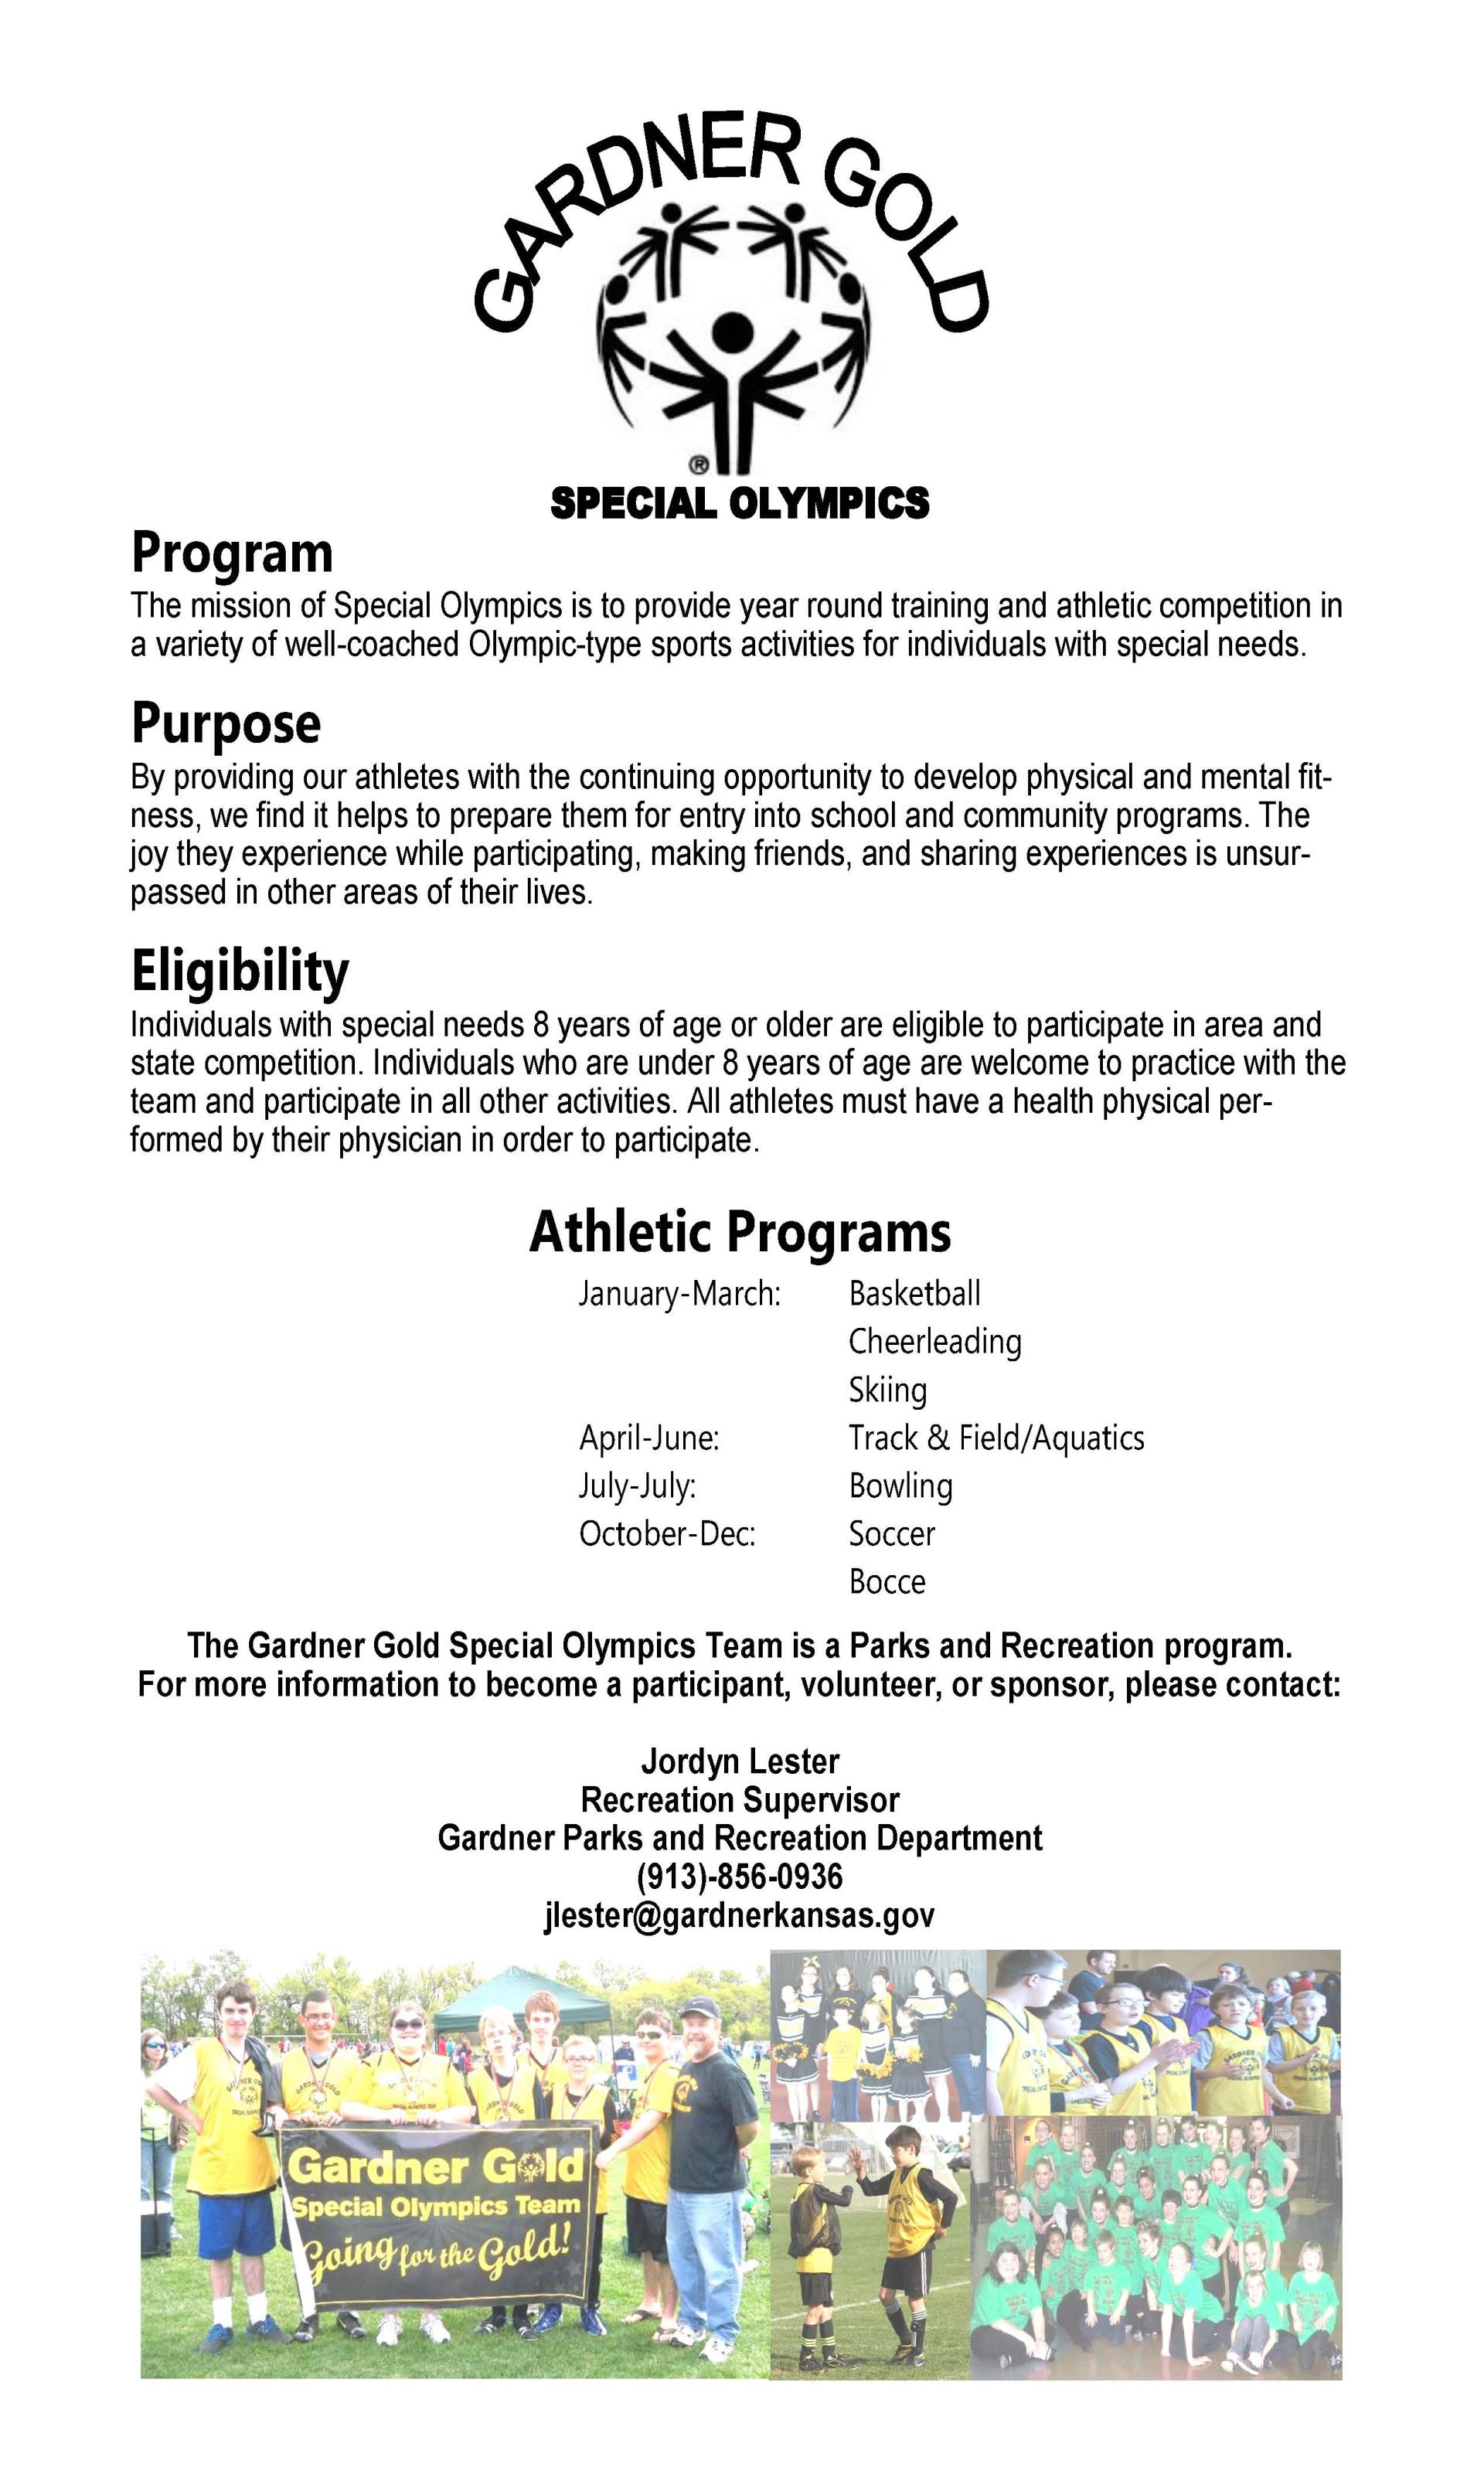 special olympics info updated with jl contact